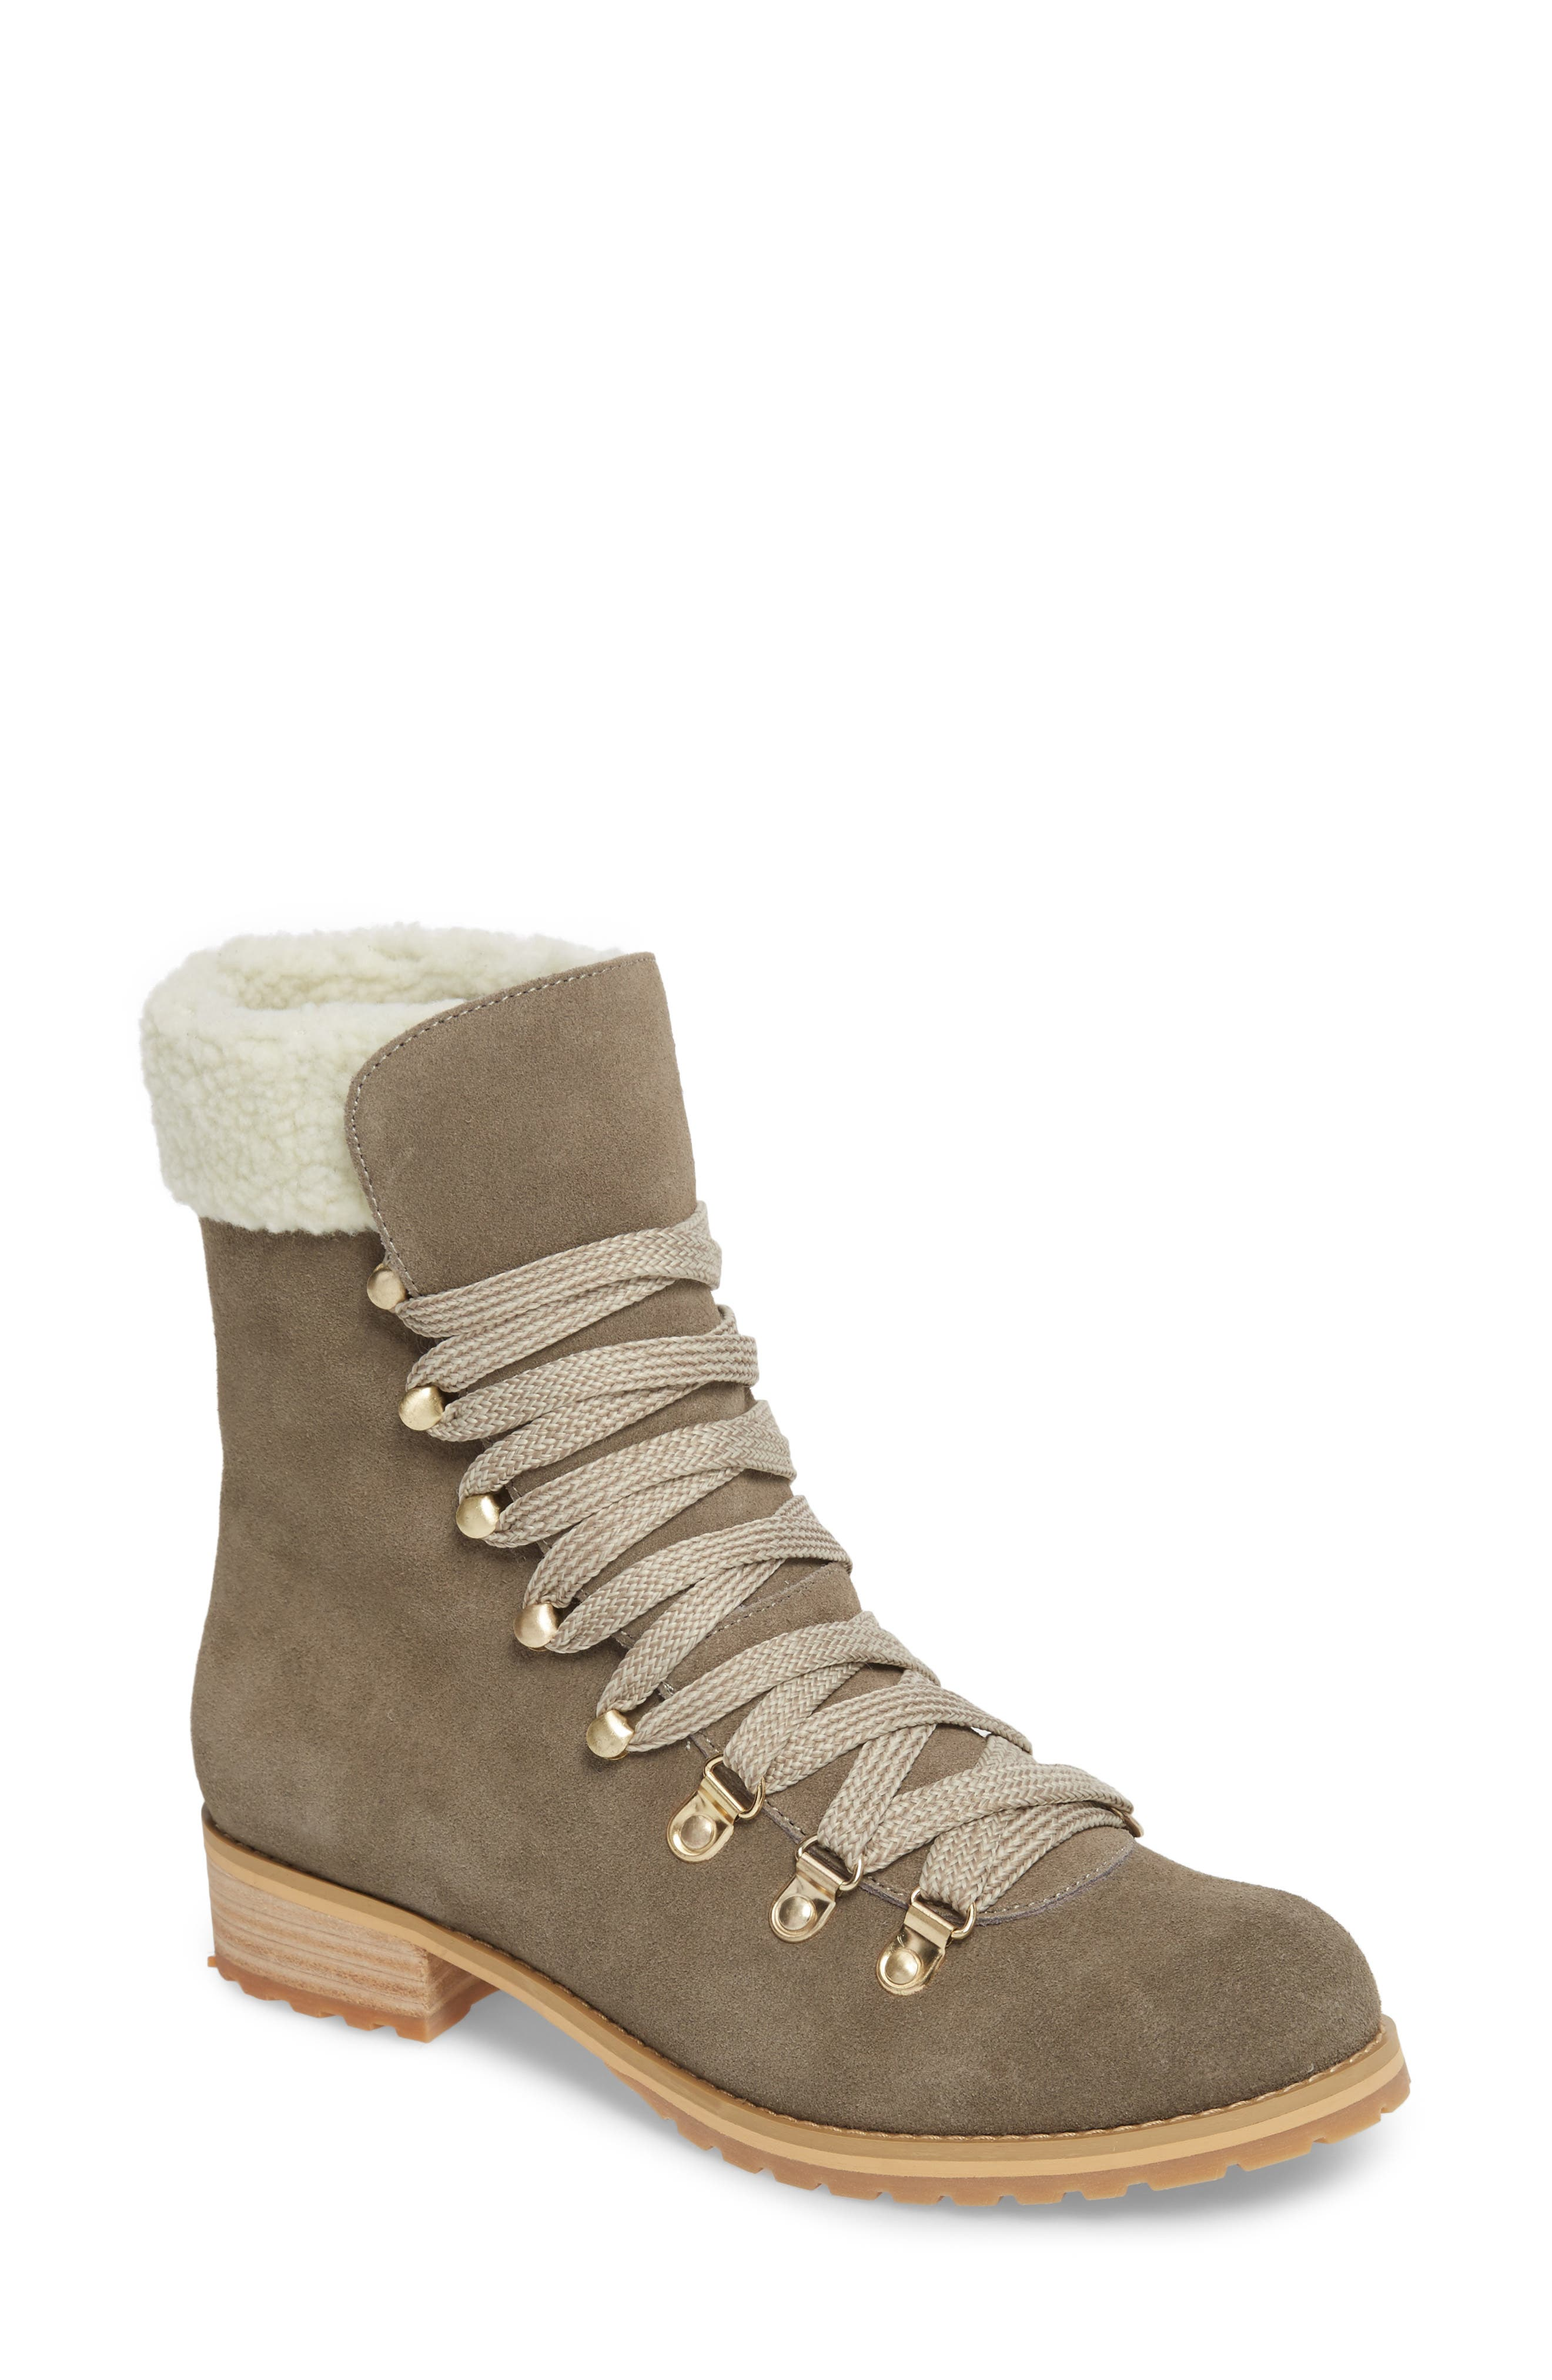 Faux Shearling Trim Ada Boot,                         Main,                         color, Mushroom